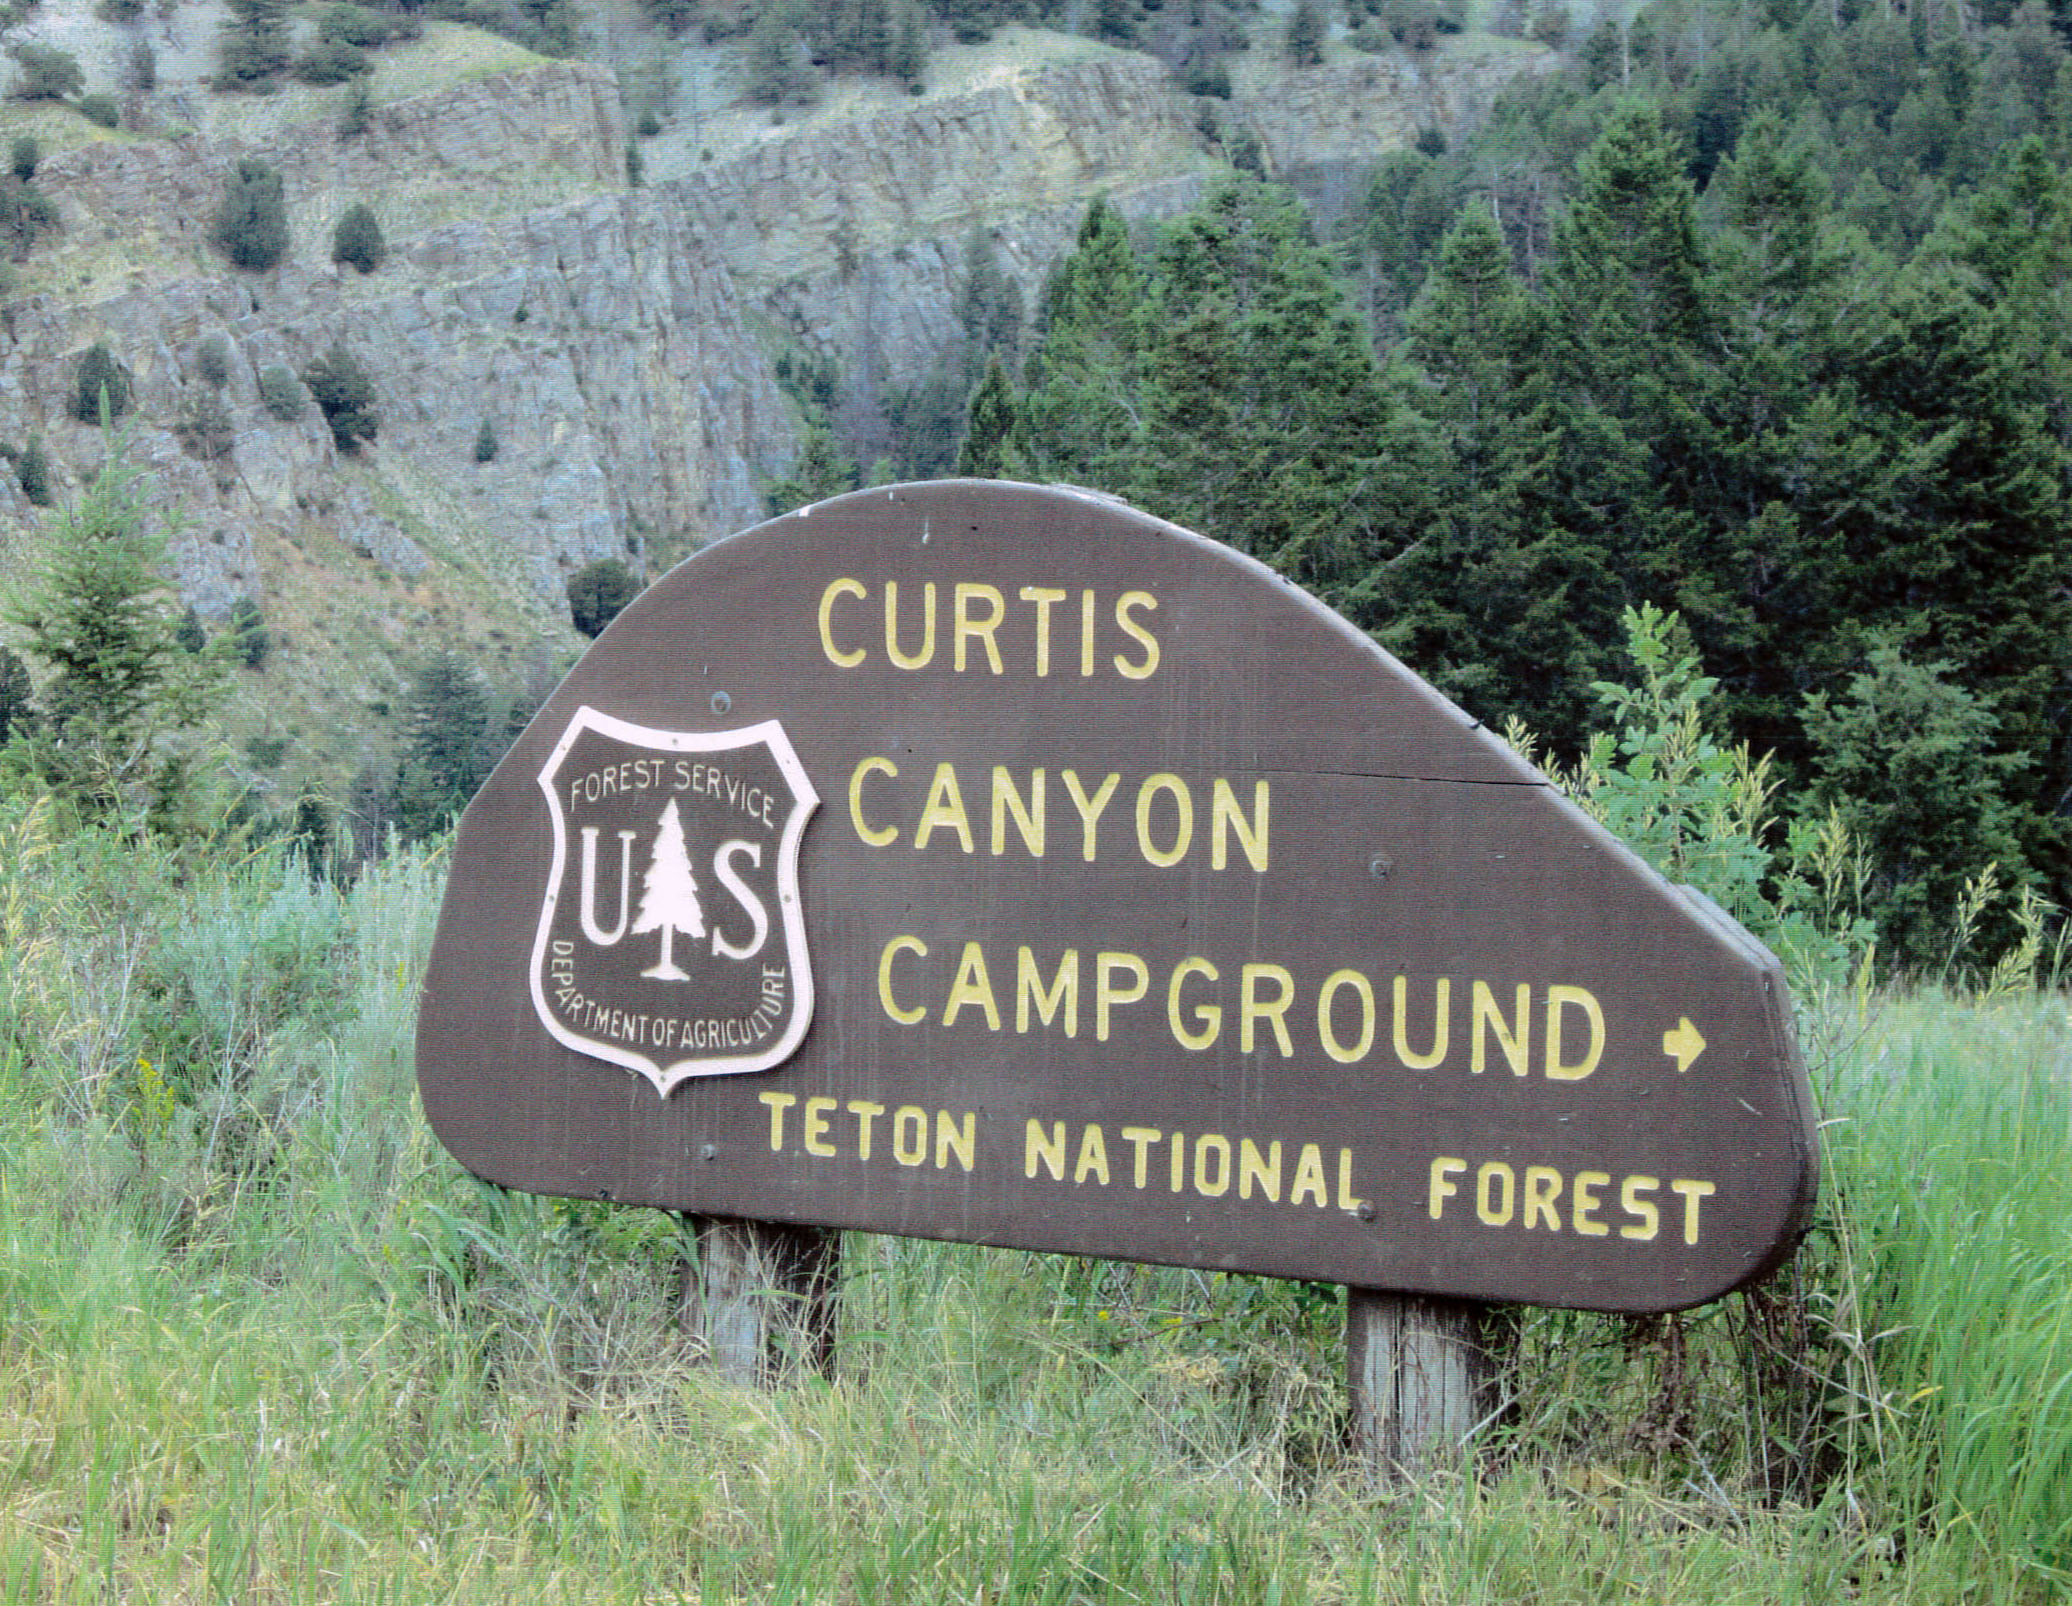 Curtis Canyon Campground Trail Sign